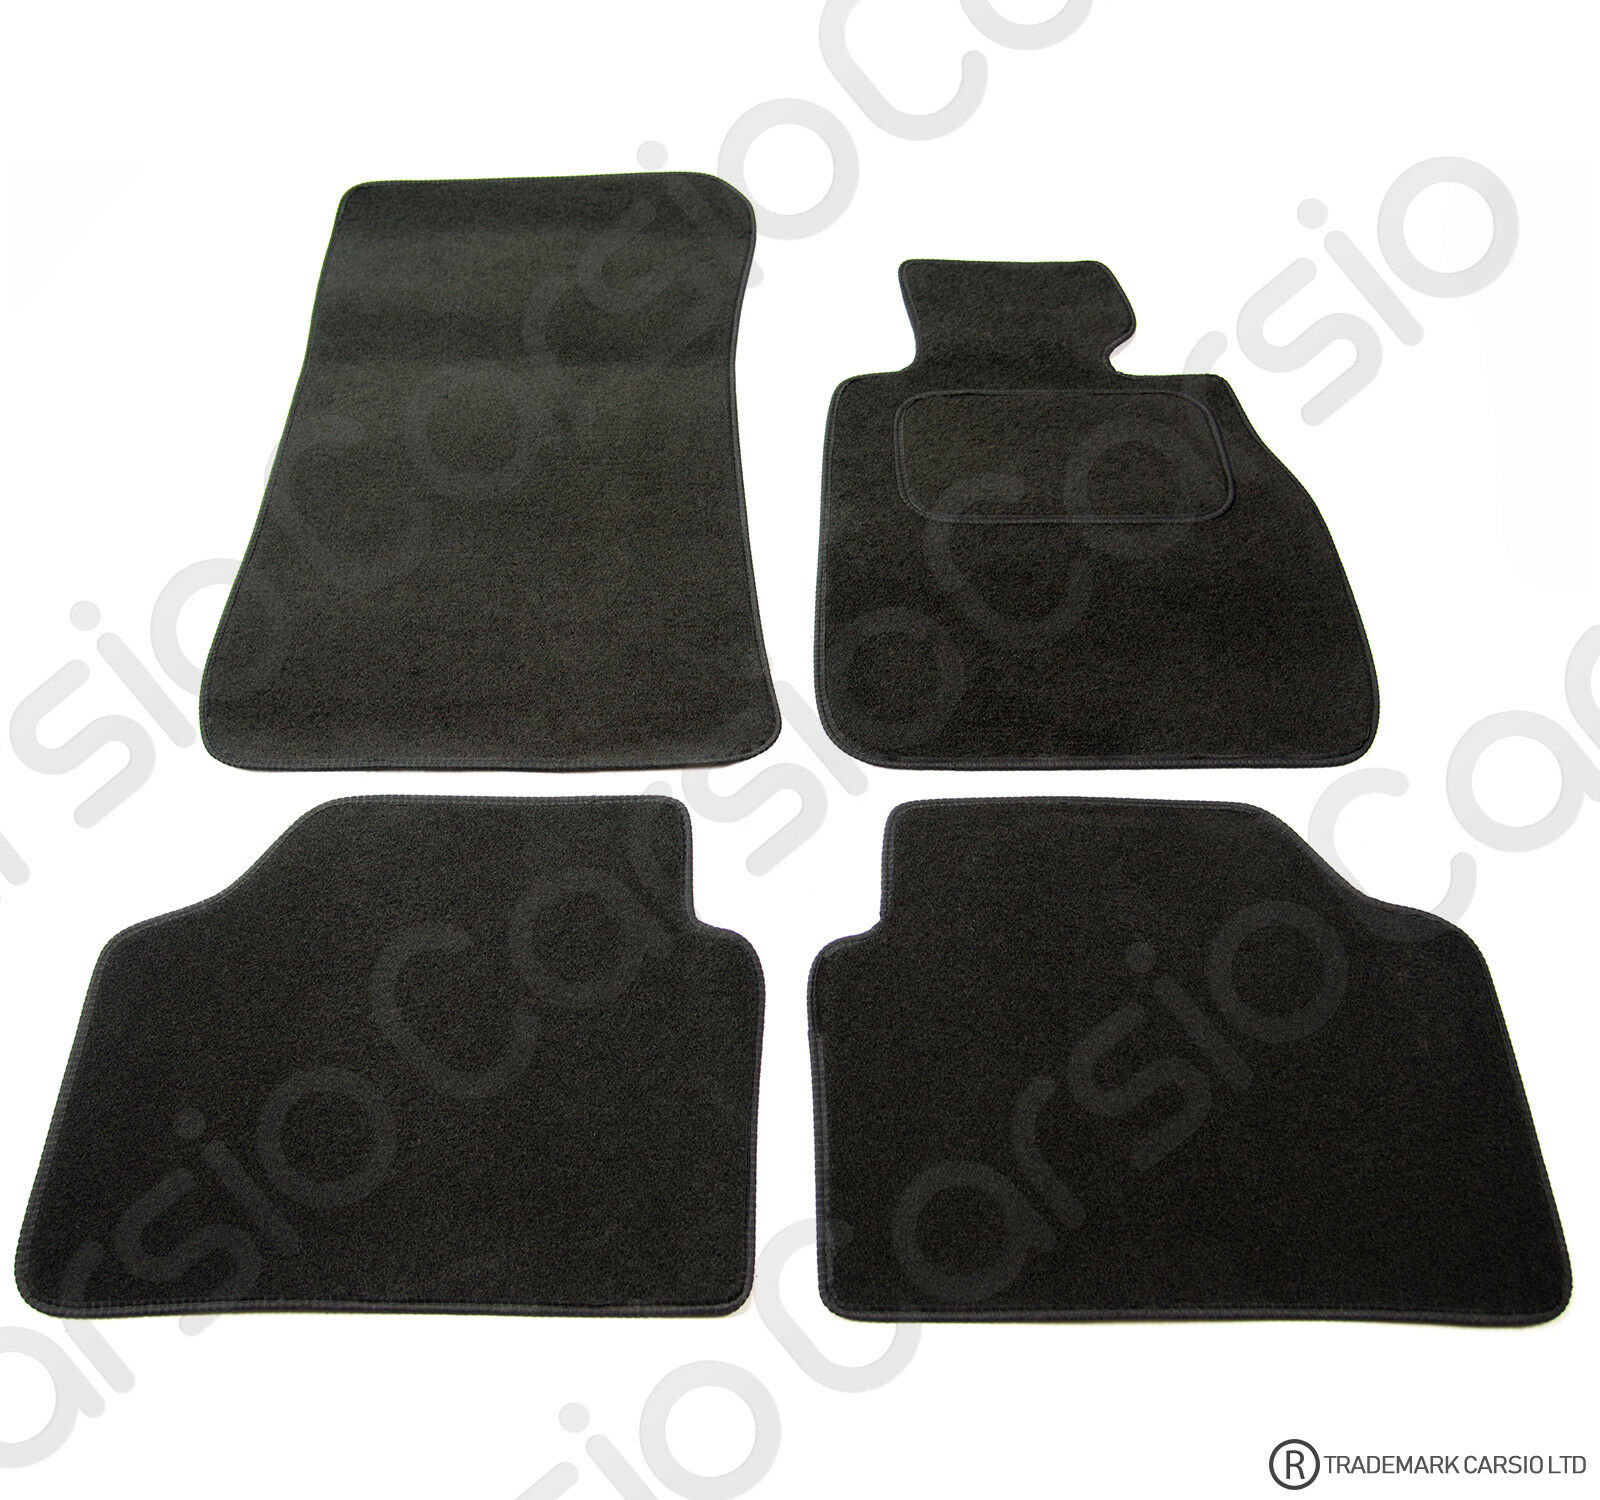 Bmw 3 Series E90 E91 2005 2012 Tailored Carpet Car Floor Mats Black 4pc Set 163 11 95 Picclick Uk